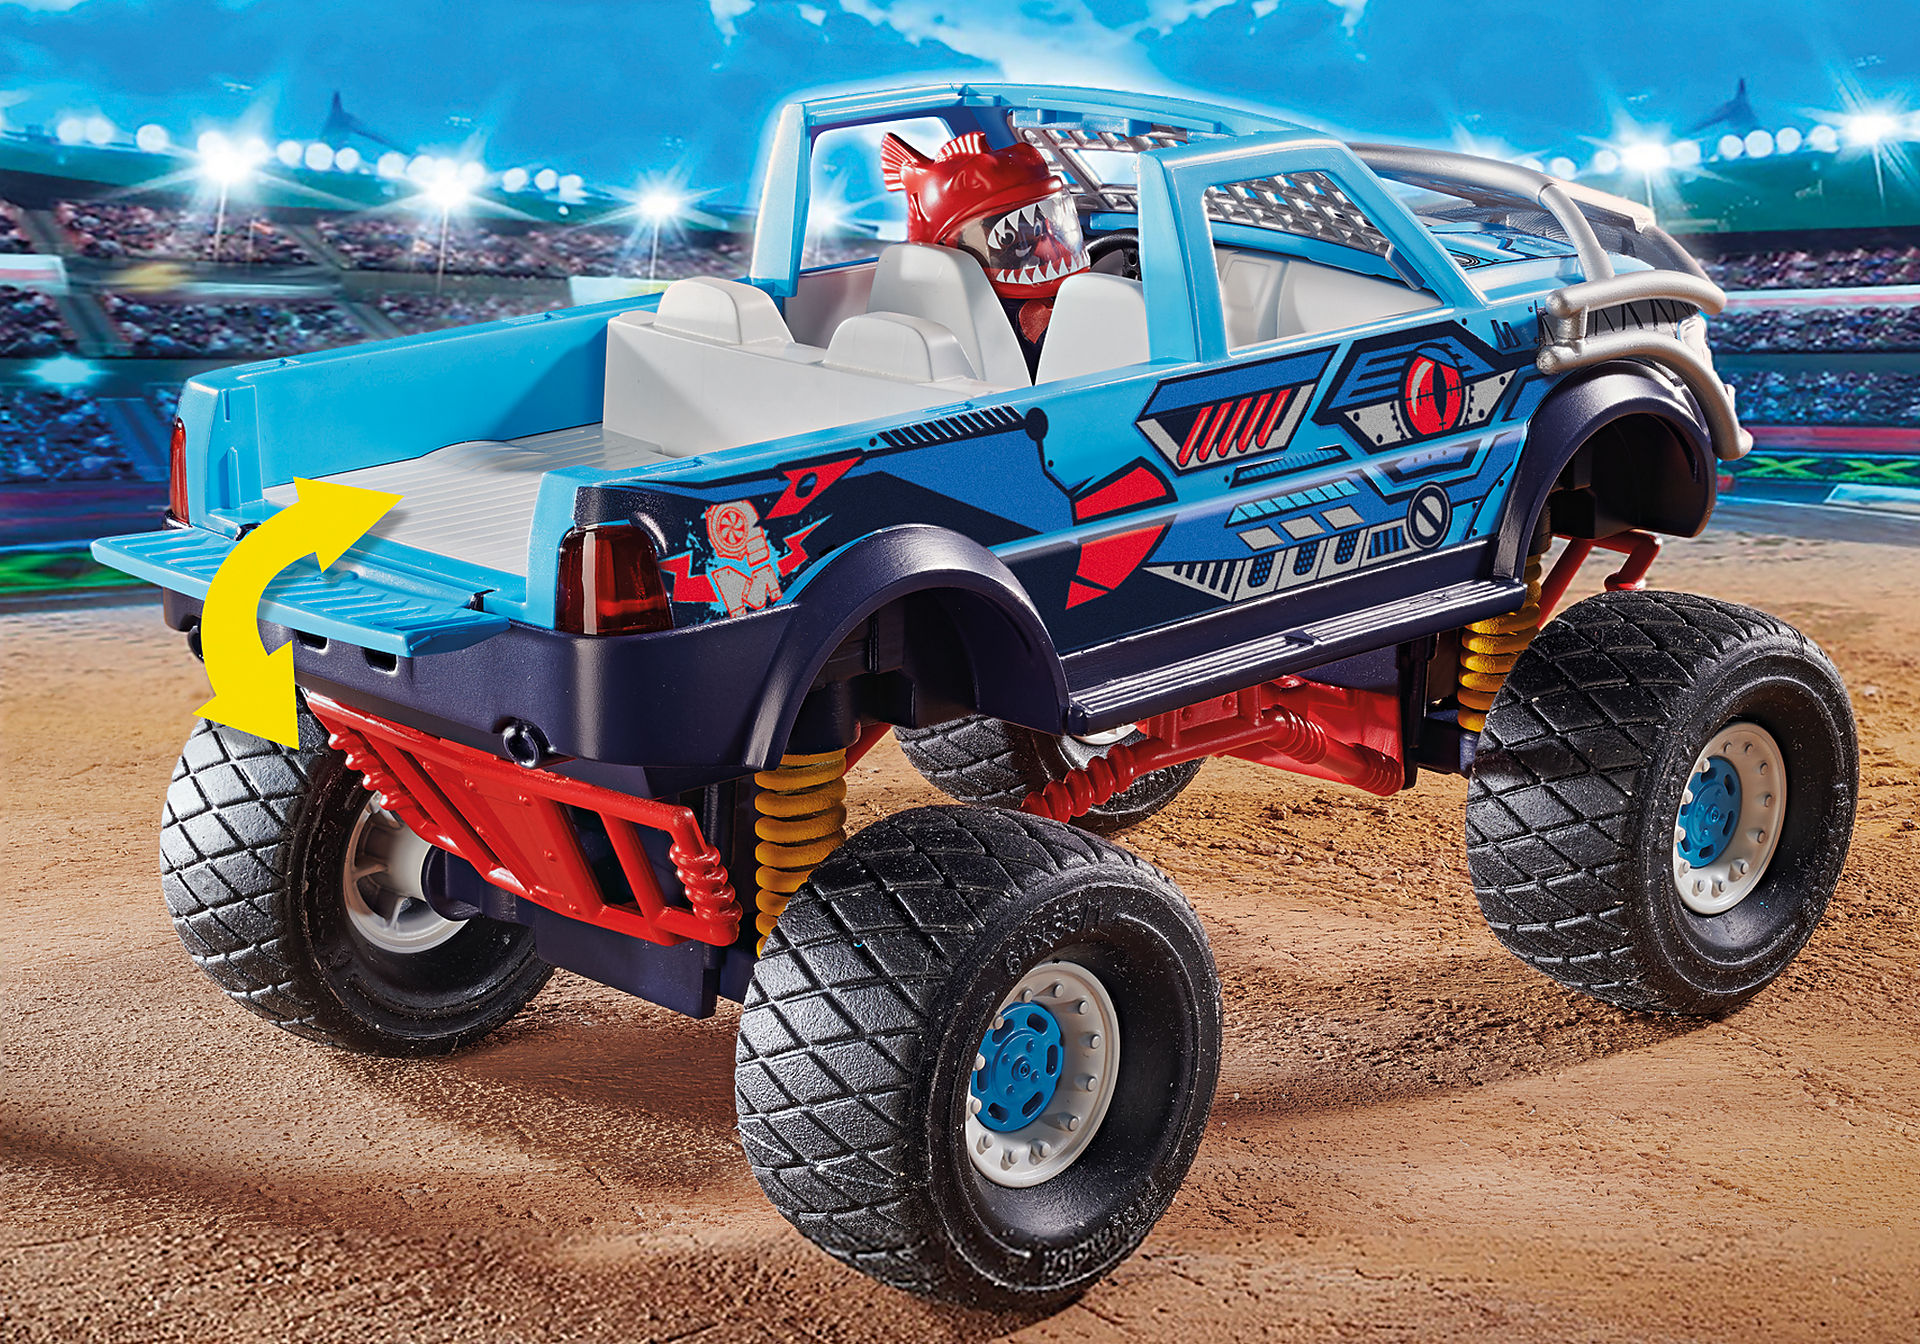 70550 Stunt Show Shark Monster Truck zoom image5